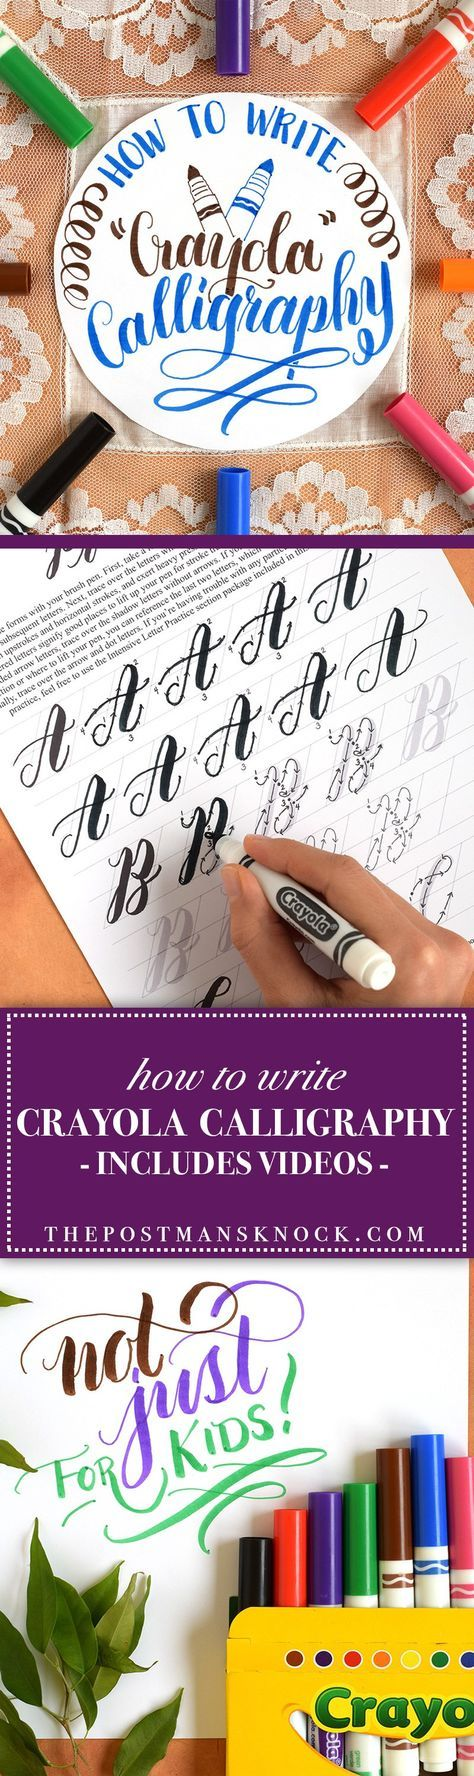 """For when you want to add words to your work. How to Write """"Crayola"""" Calligraphy   The Postman's Knock"""